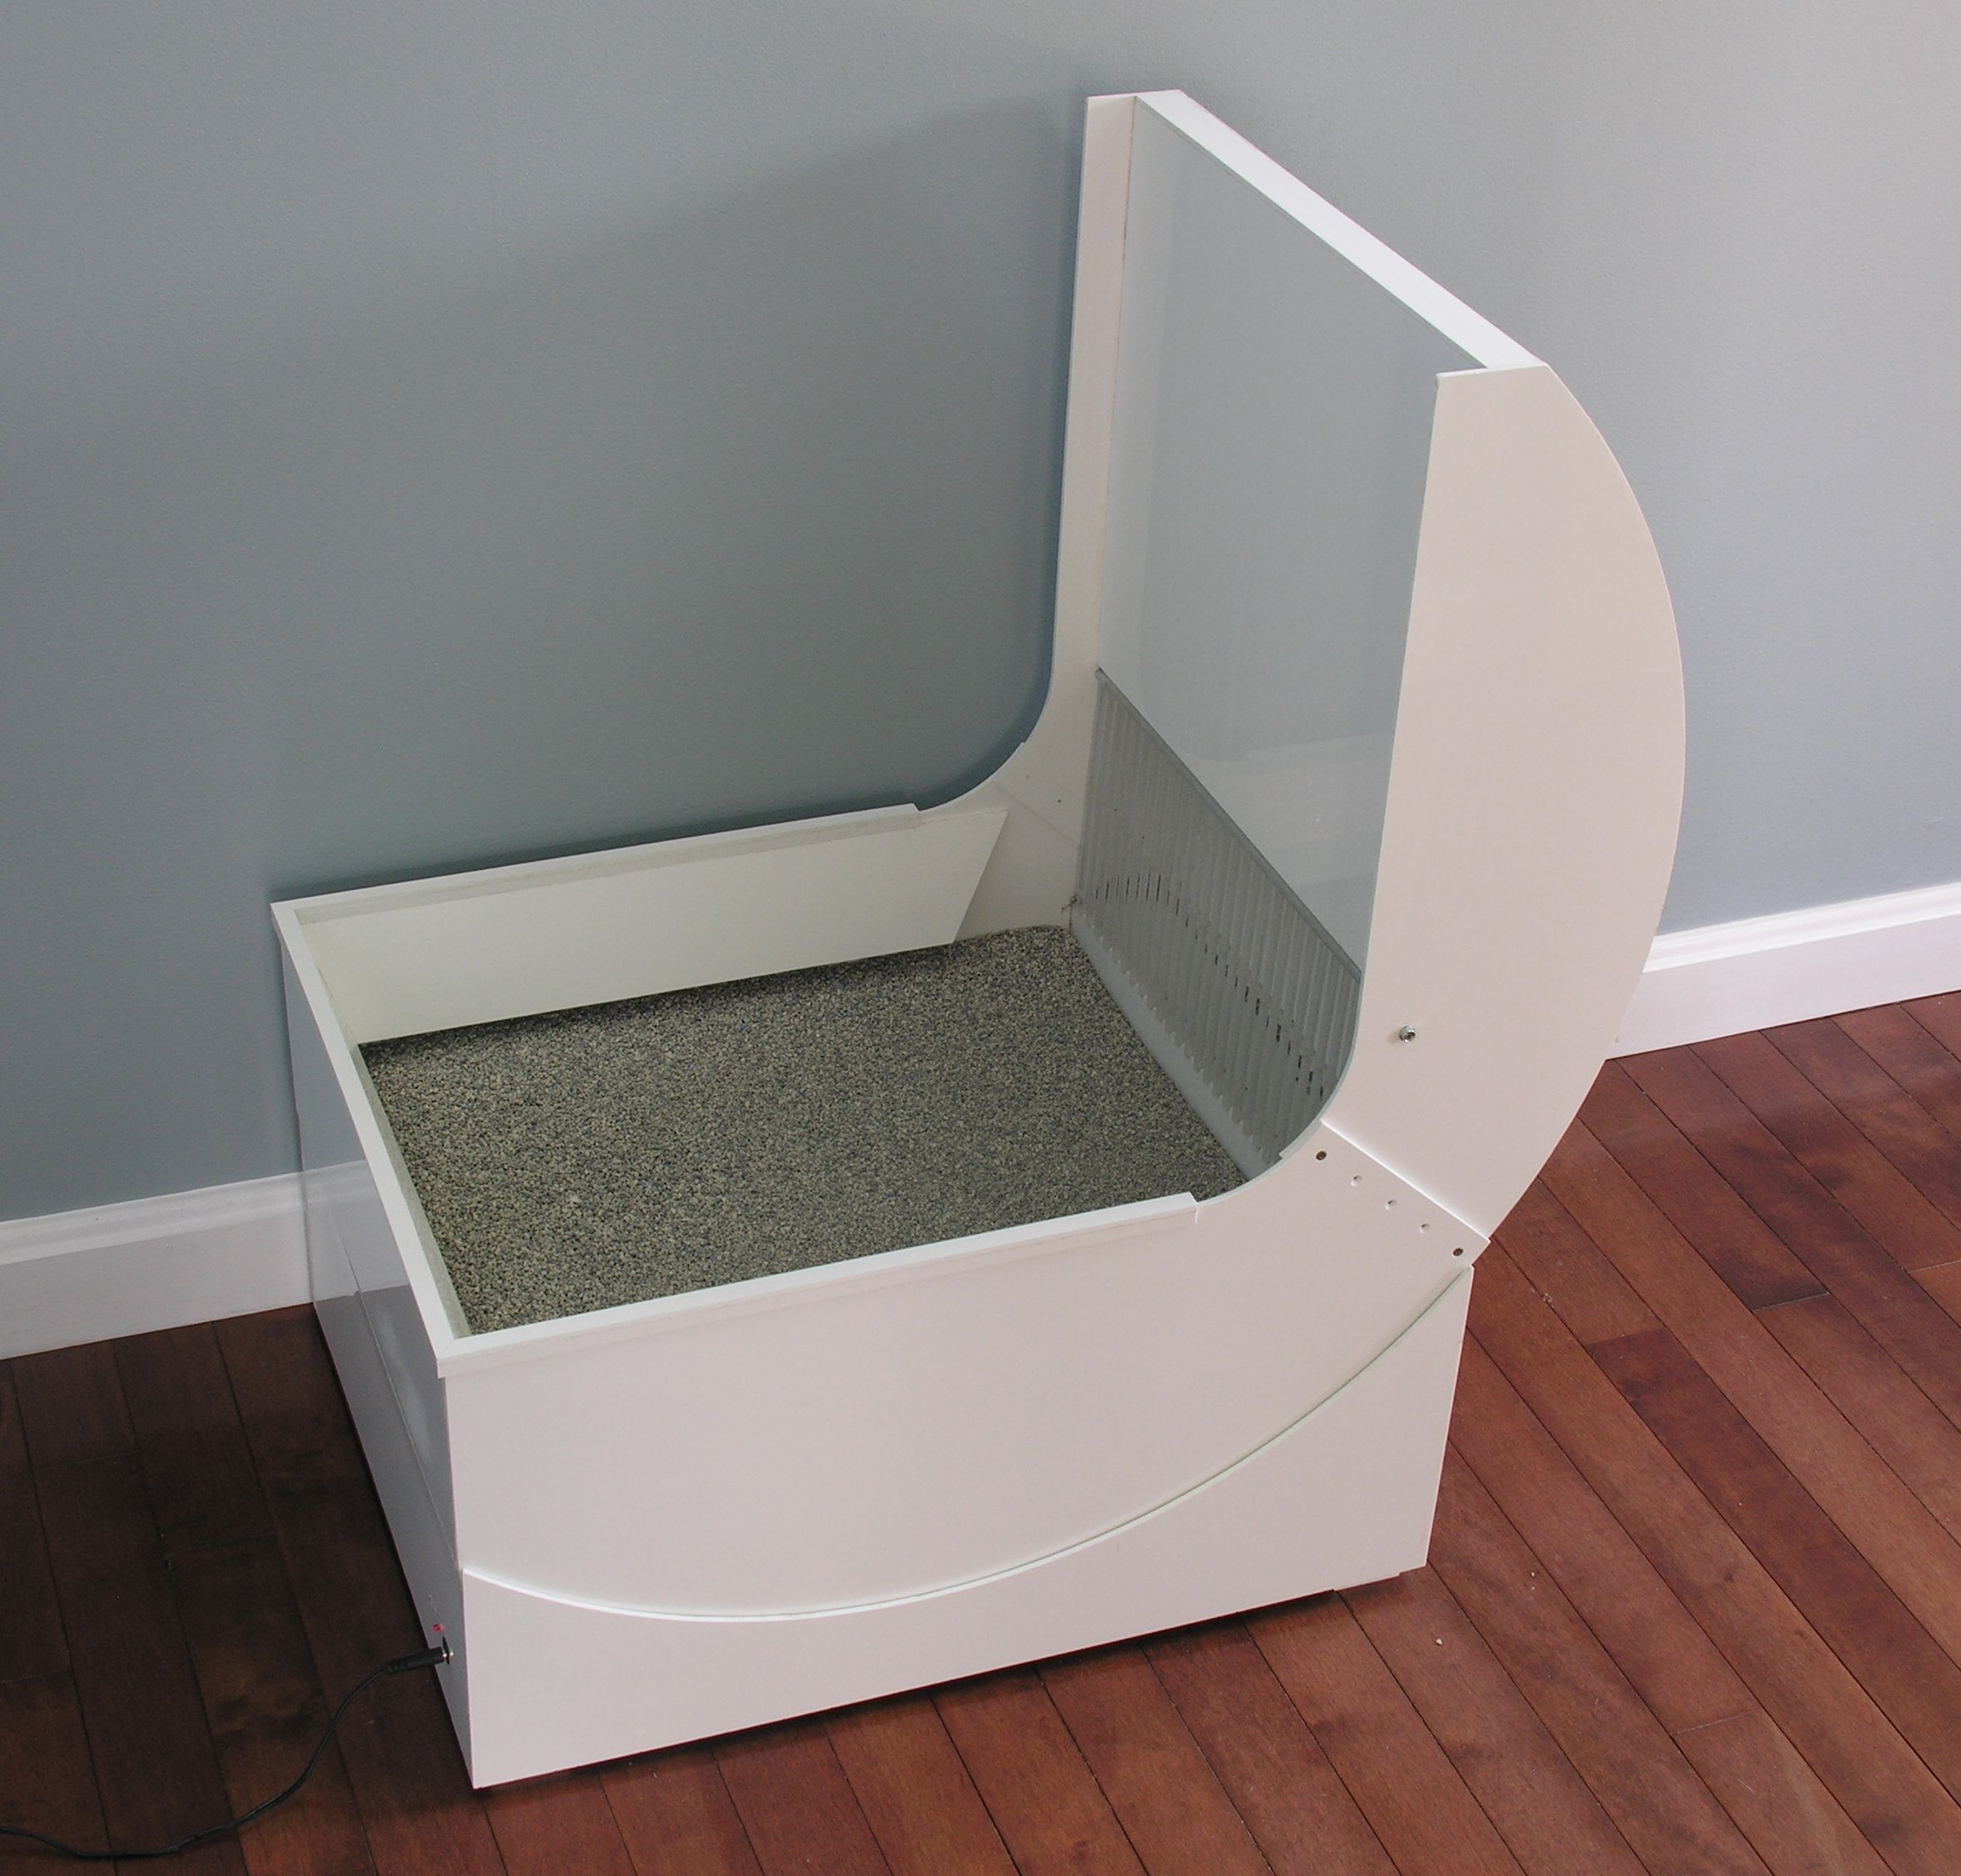 This Is The Best Looking Automatic Litter Box I Ve Seen